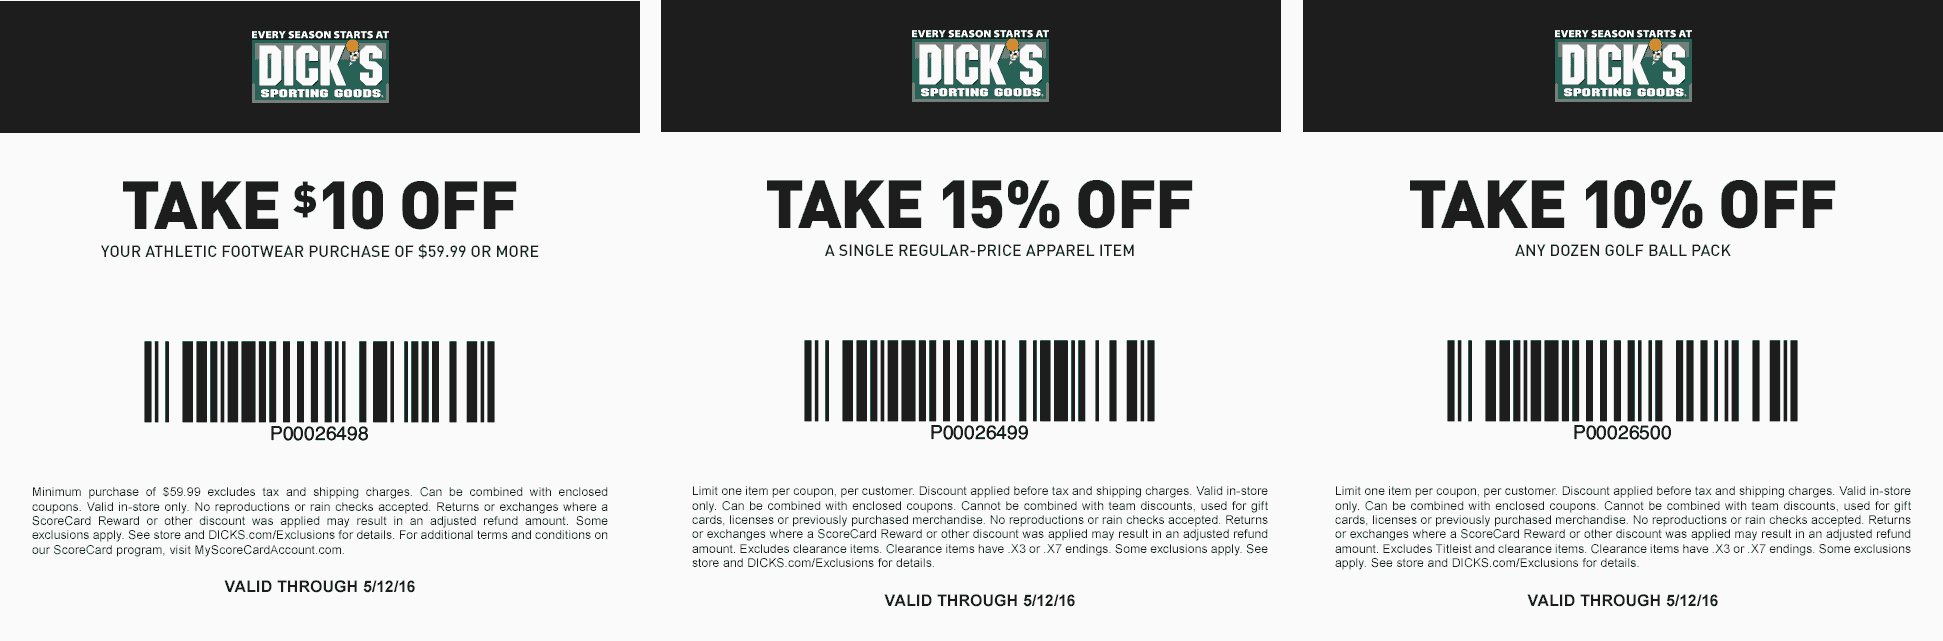 Dicks Coupon December 2016 $10 off $60 on footwear & more at Dicks sporting goods